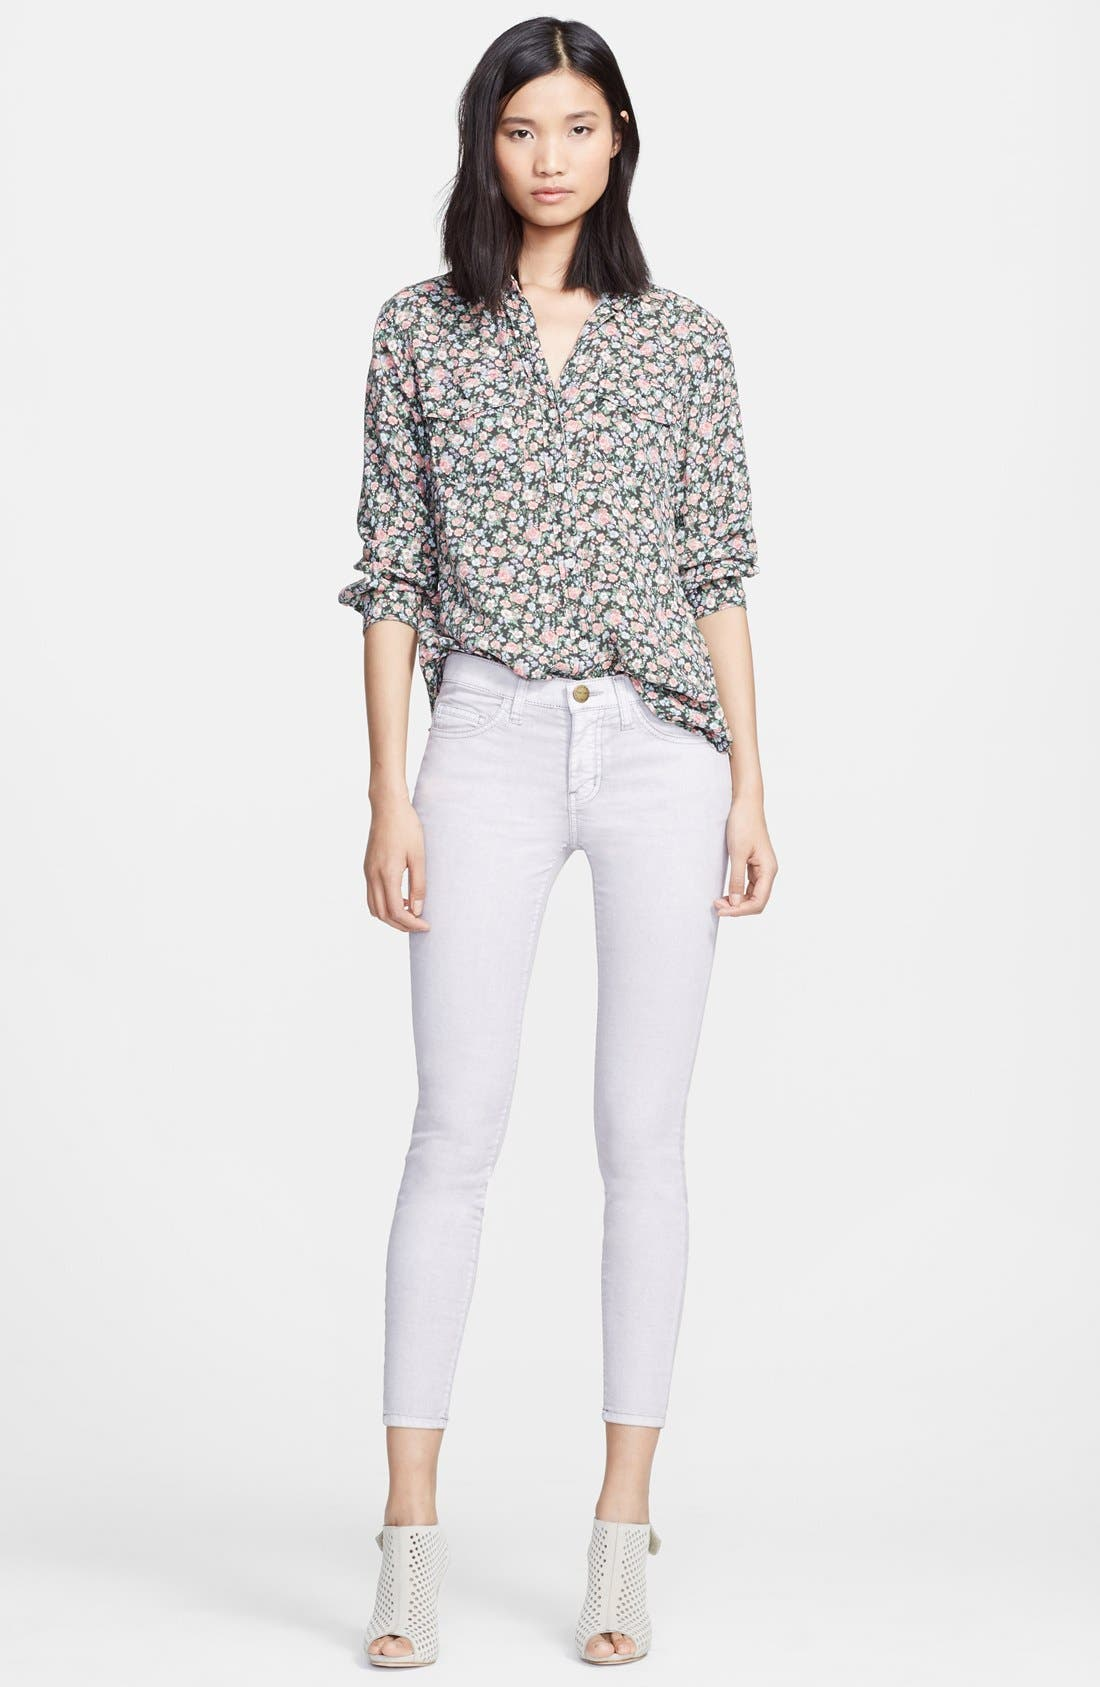 Main Image - Current/Elliott 'The Perfect Shirt' Floral Print Shirt